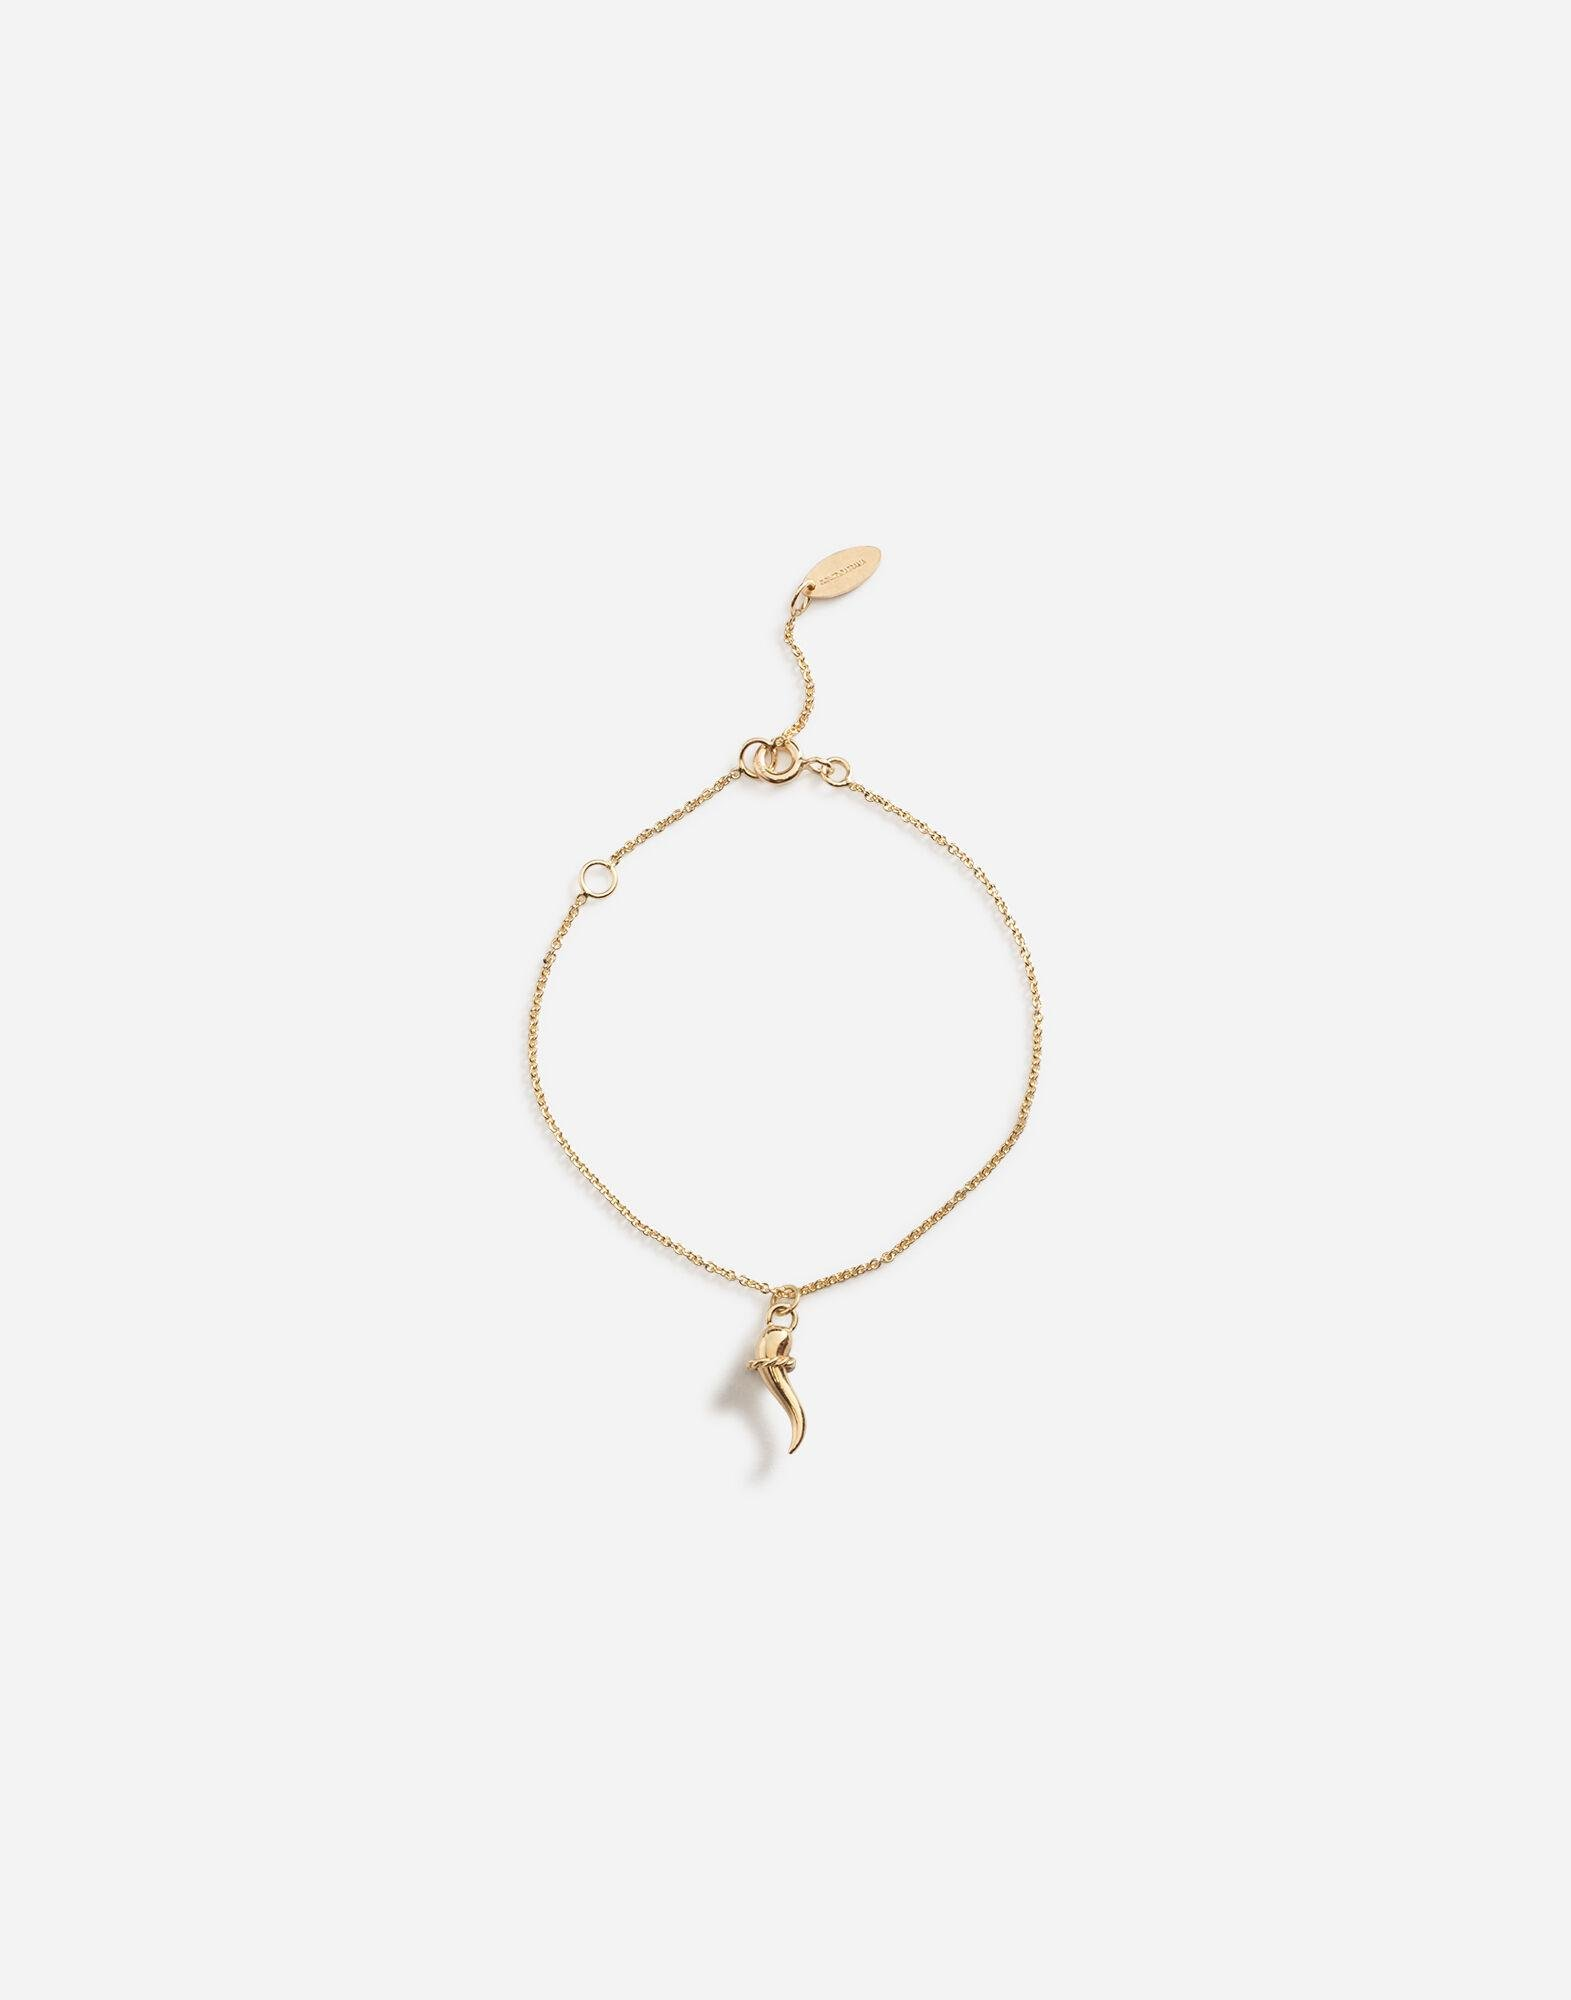 Bracelet with good luck charm